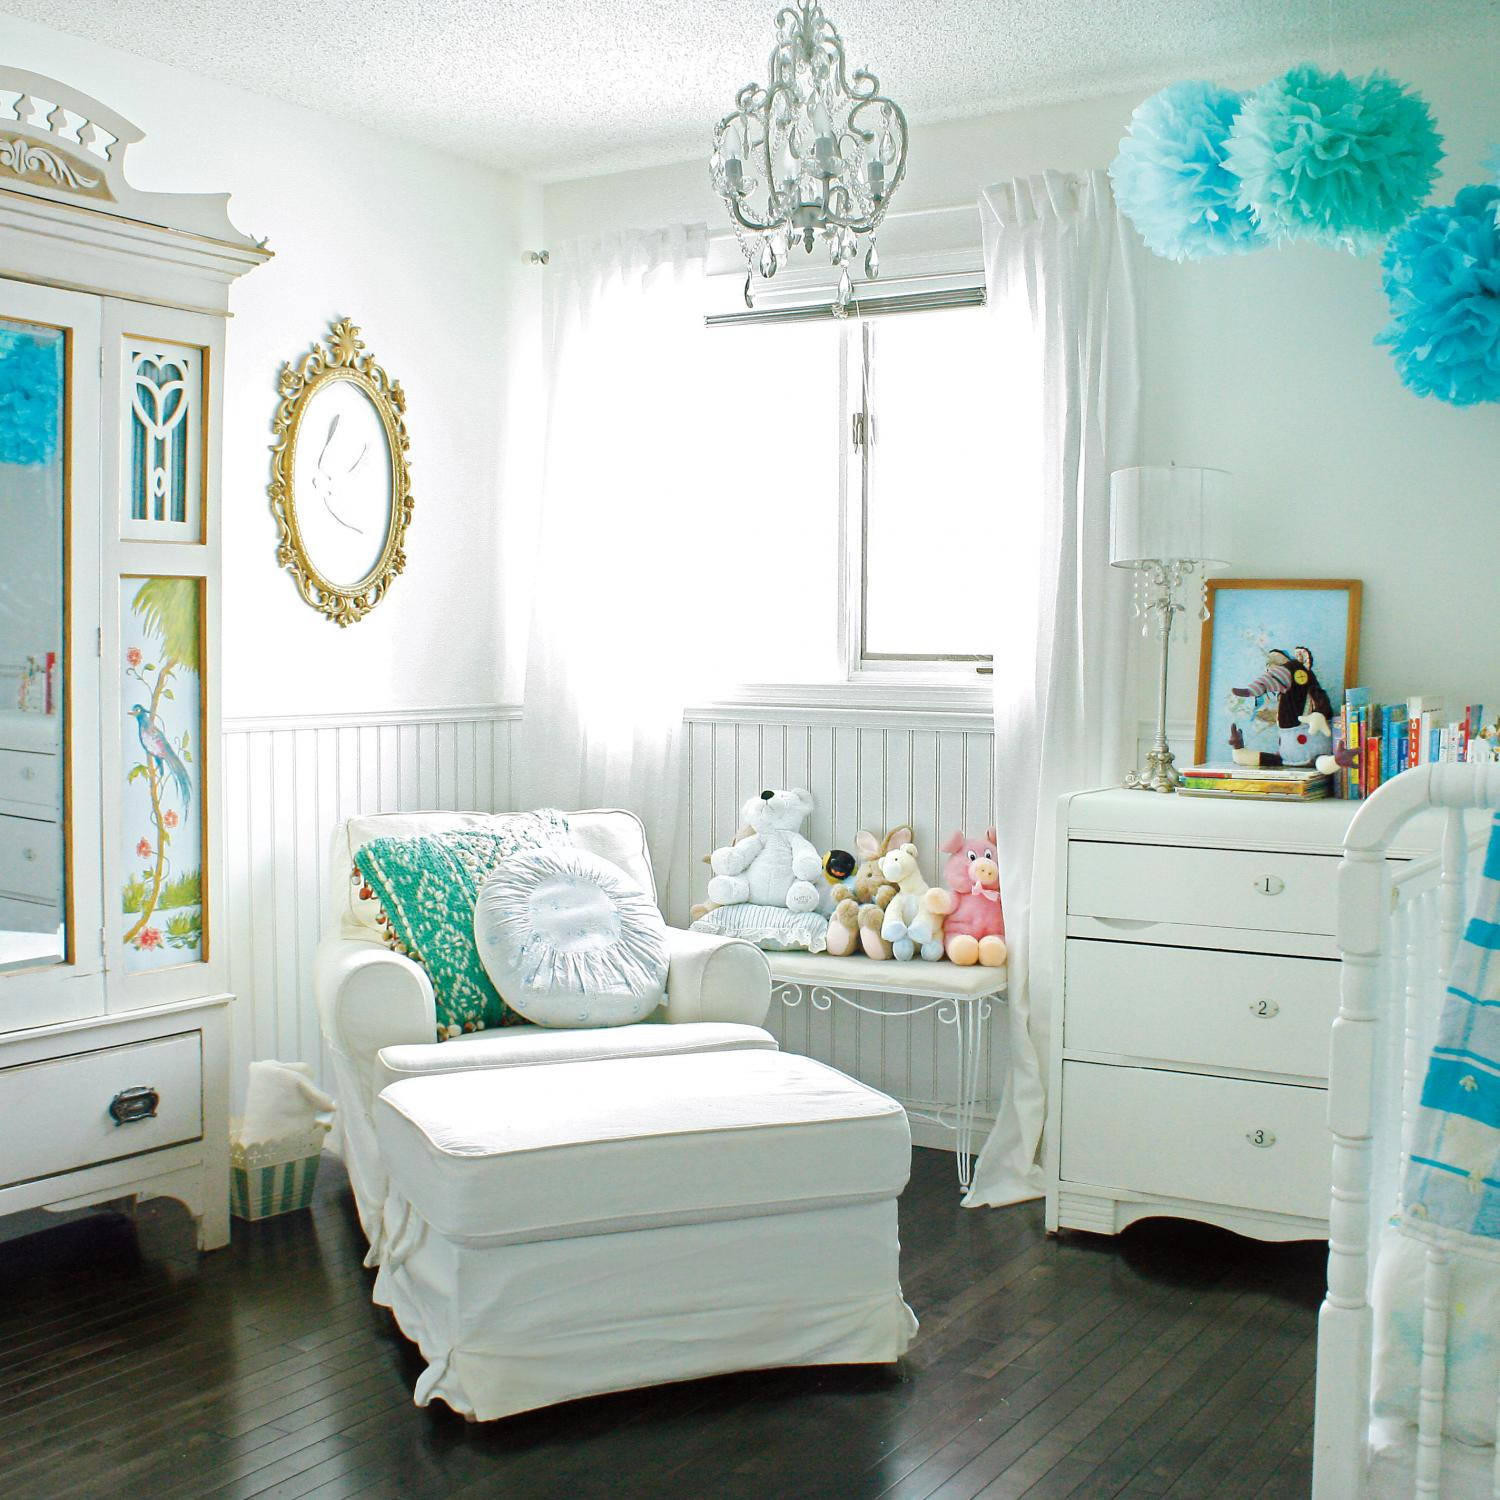 Antique Baby Room Ideas Designed for Modern House  Ideas 15 Homes